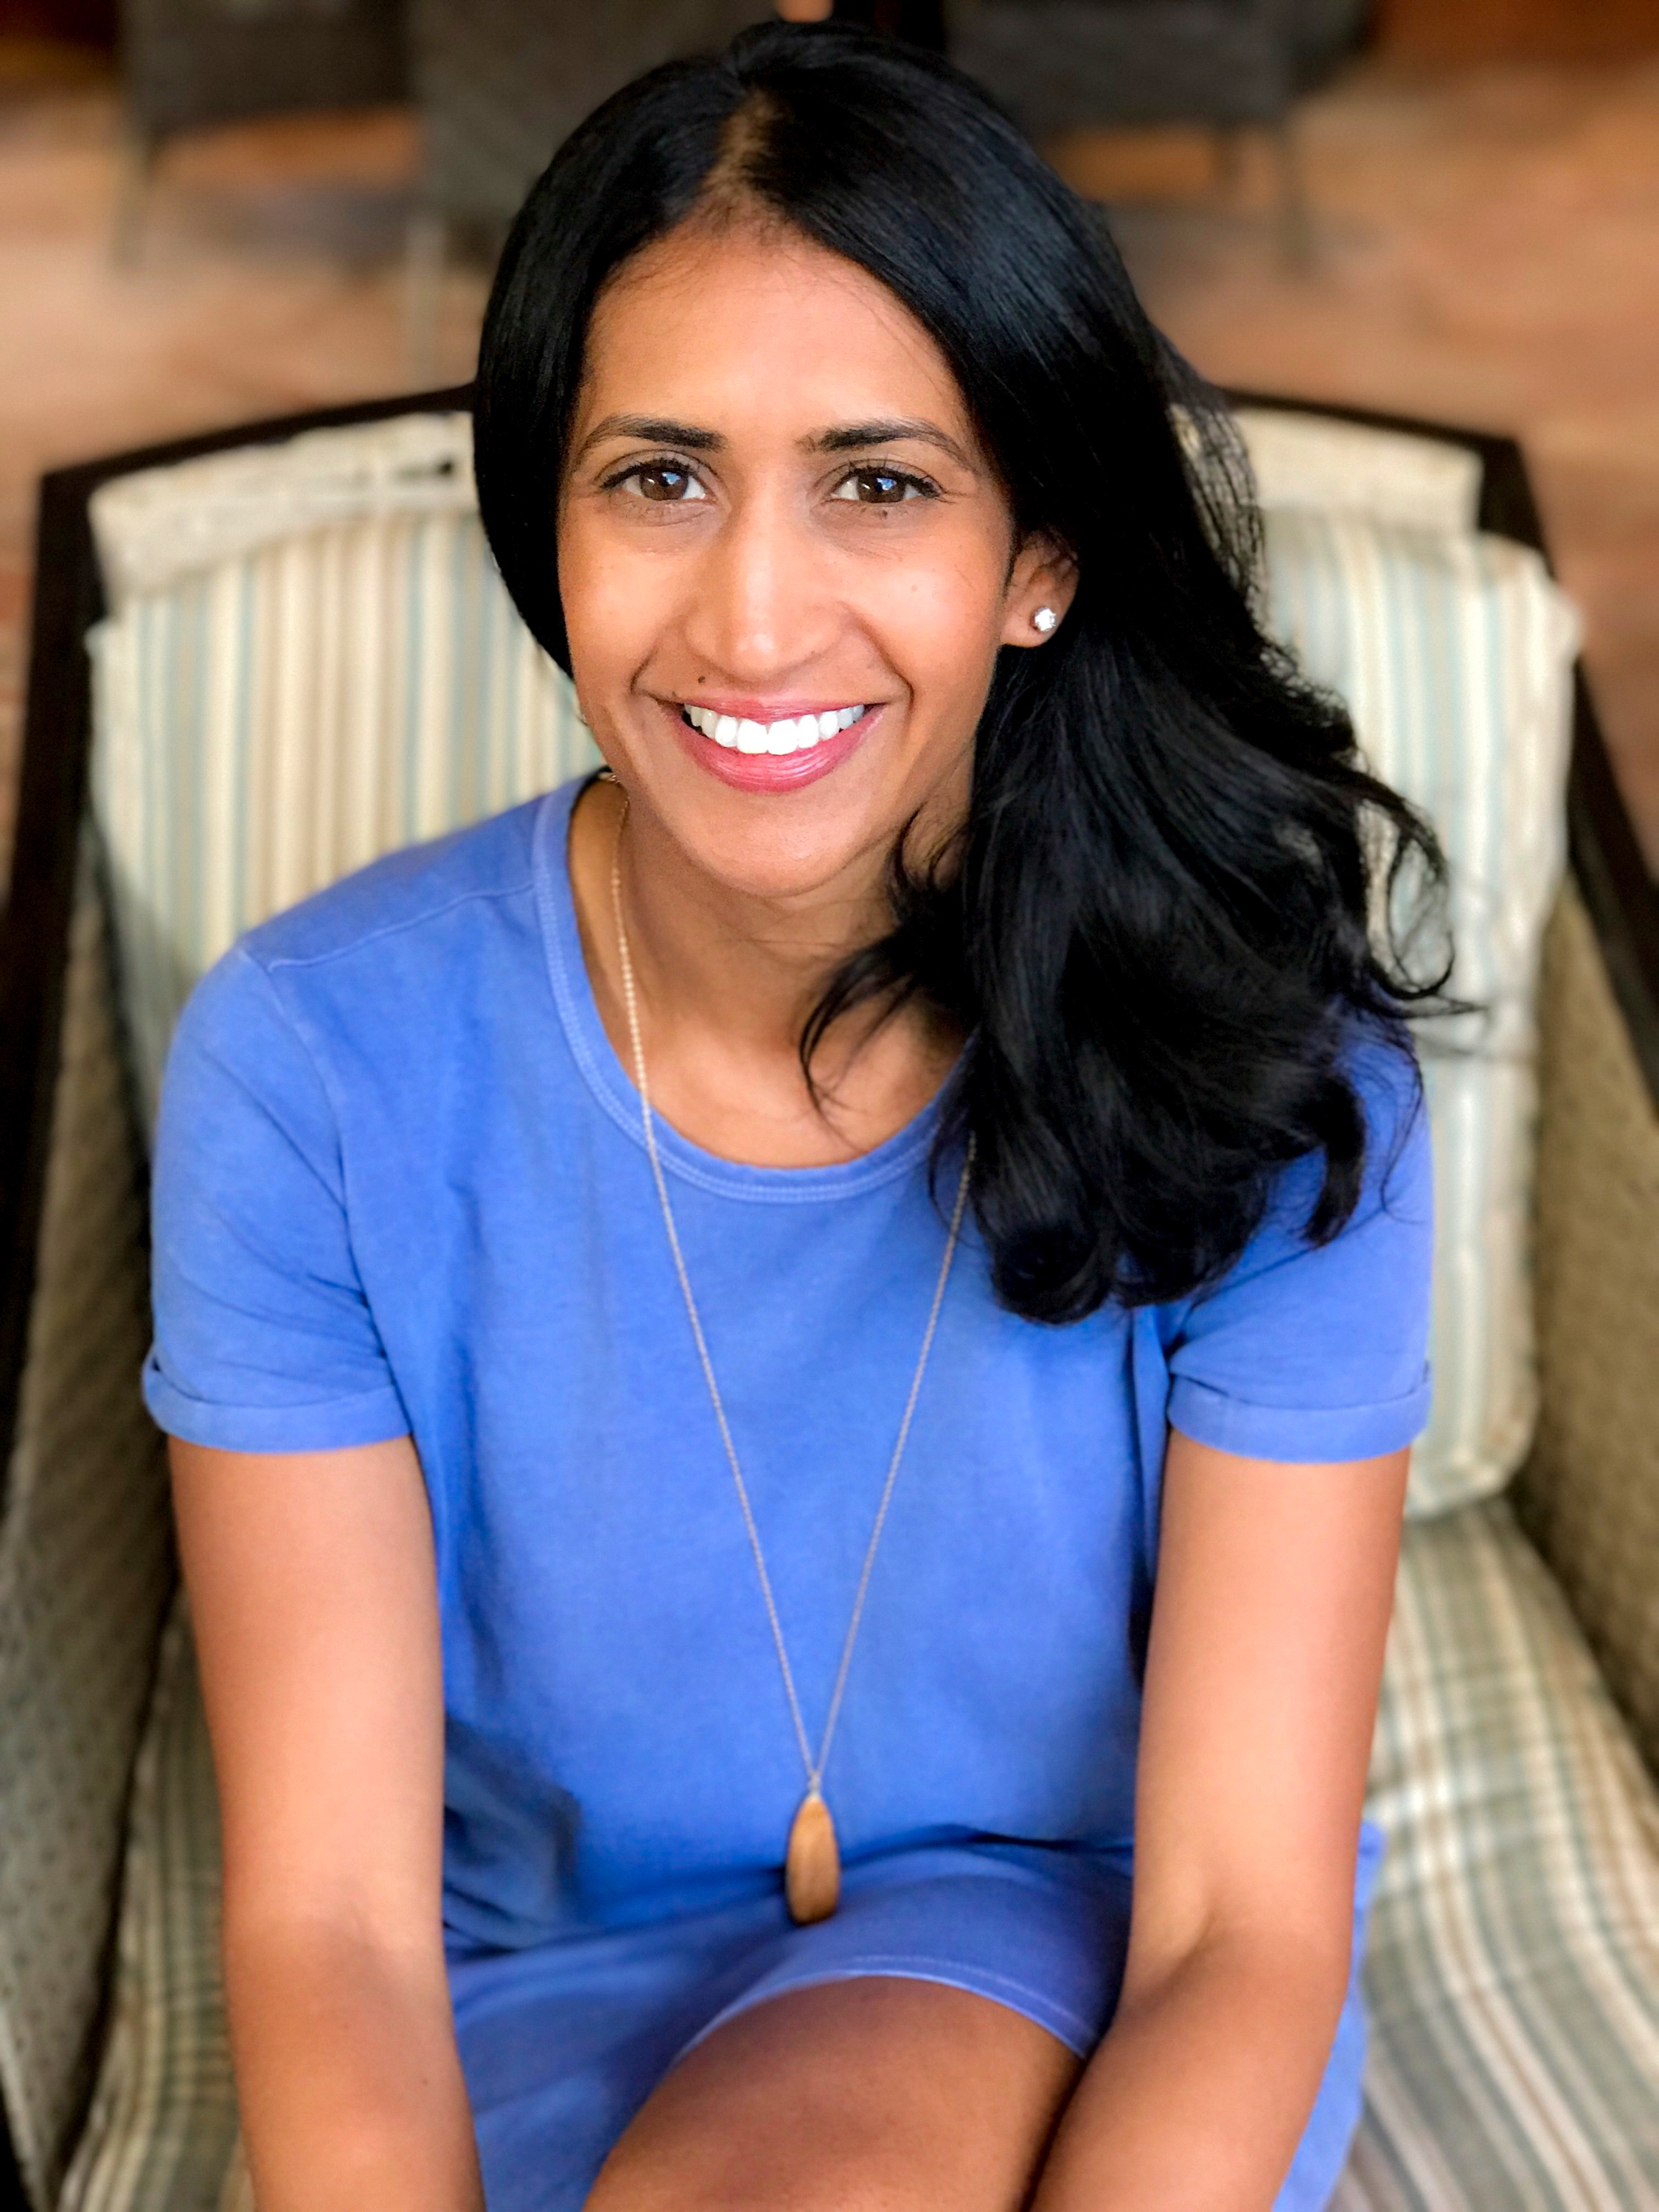 Smitha Gandra, MFT intern is a therapist at the SF Marriage and Couples Center. She offers sliding scale therapy to individuals and couples.